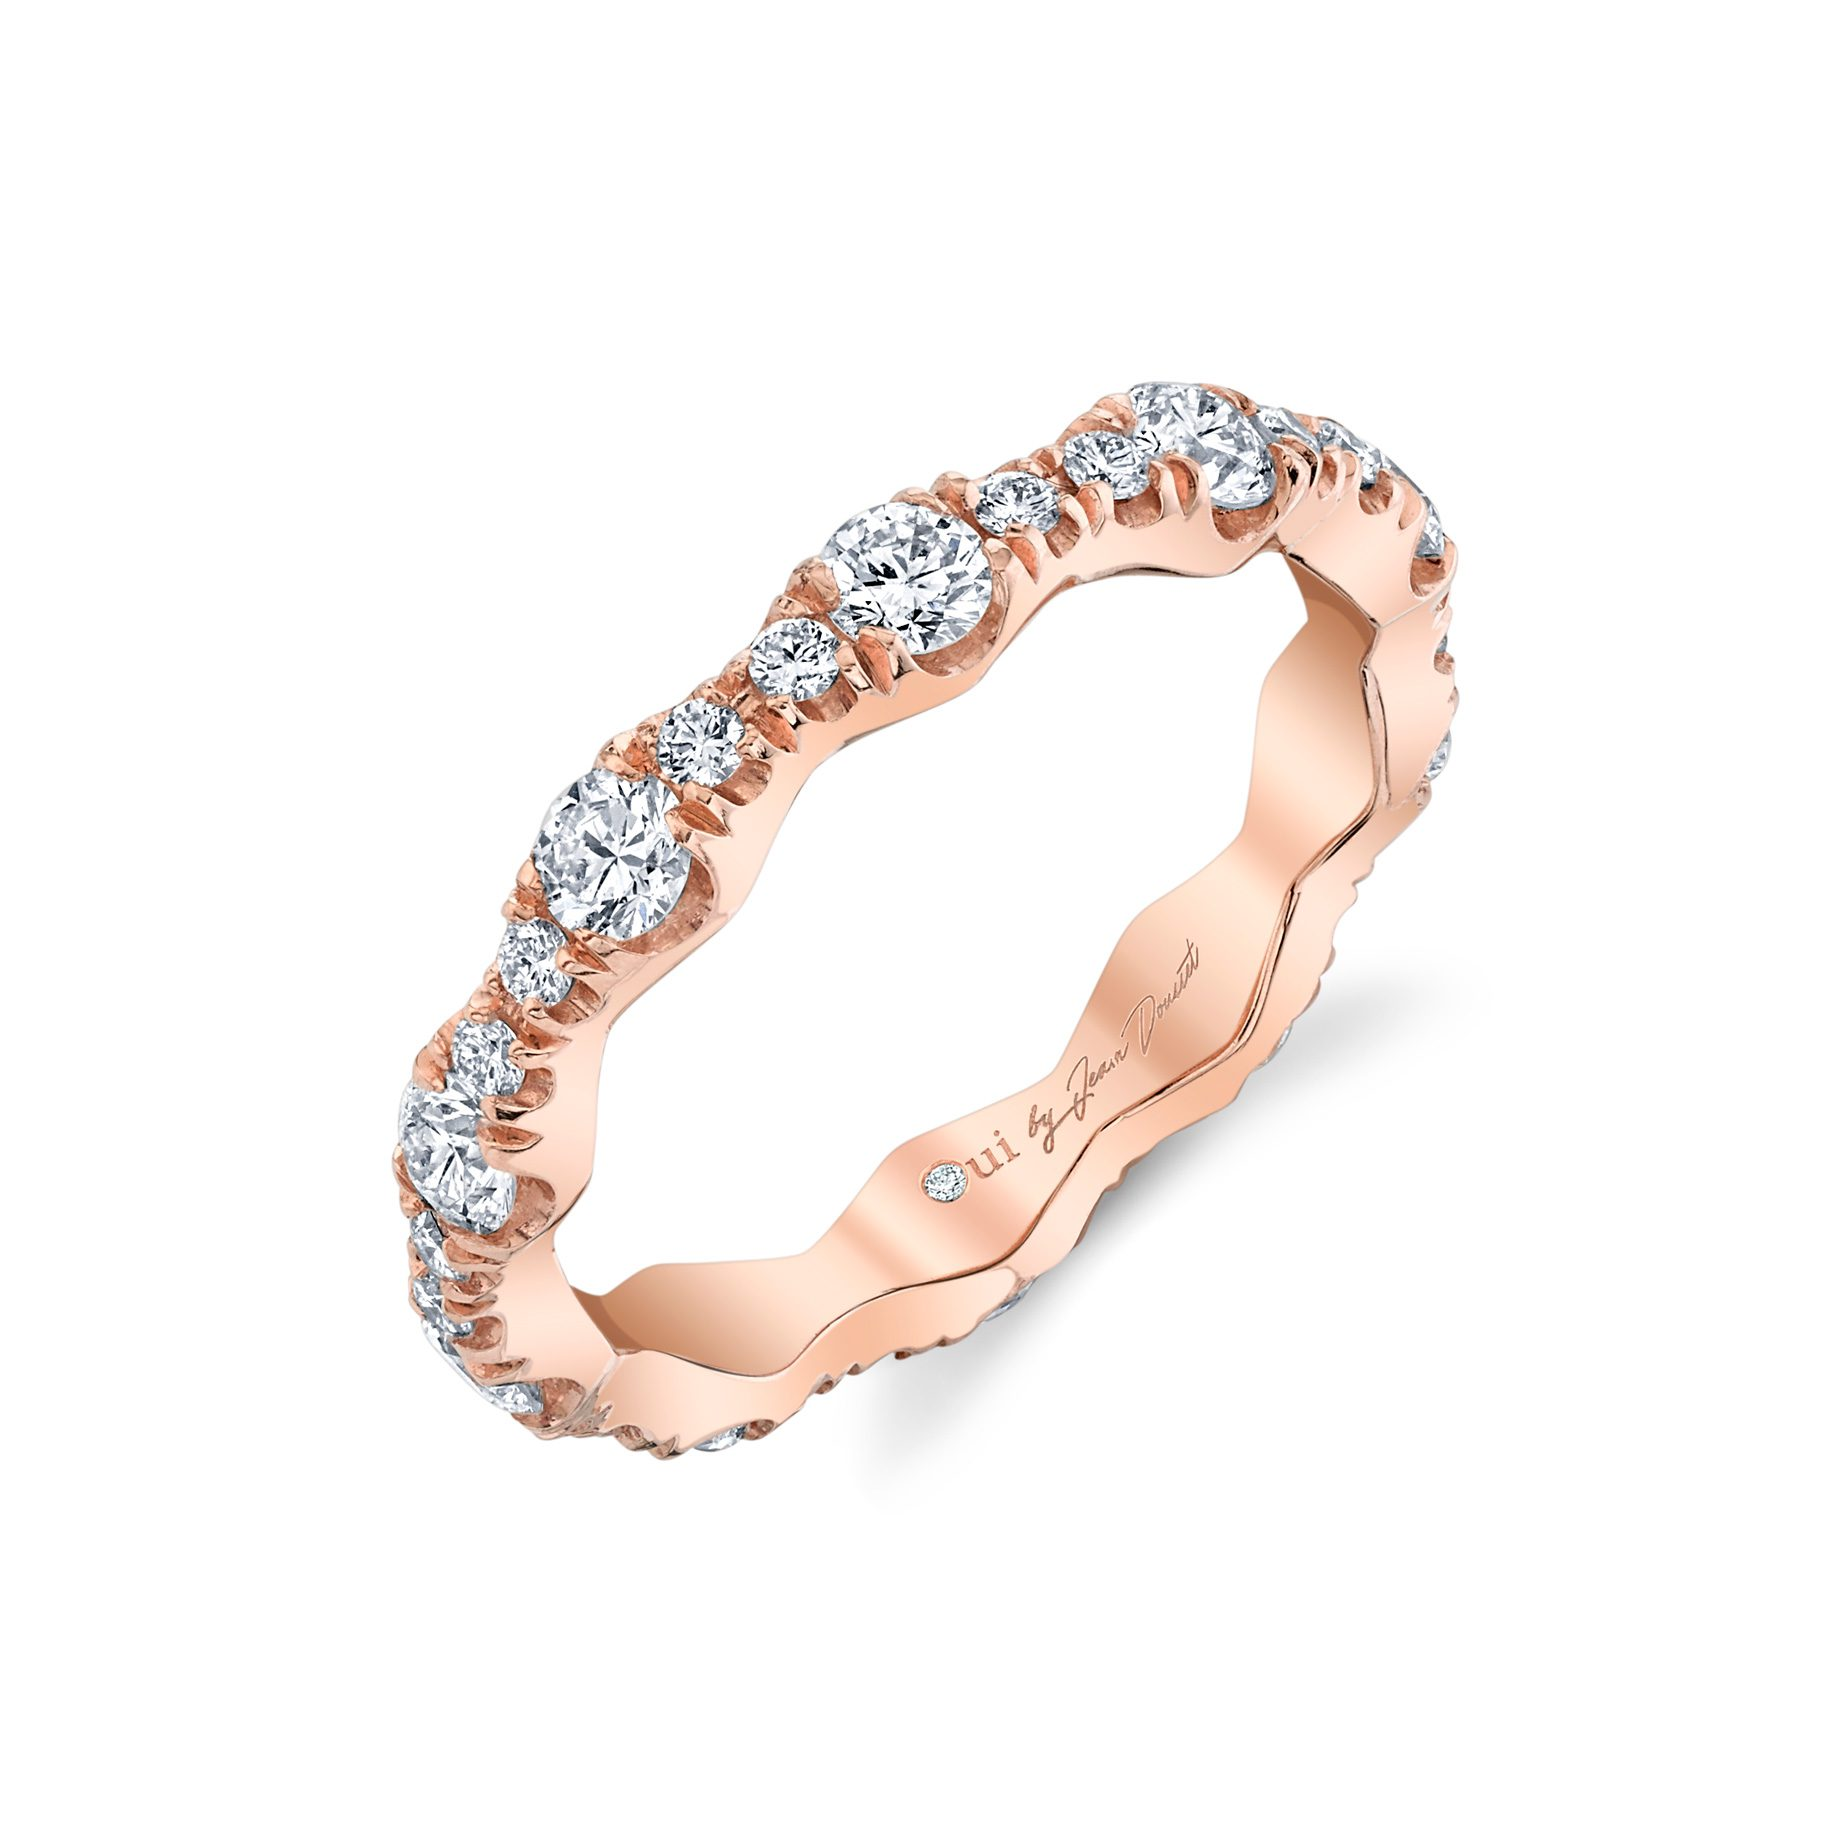 Yvonne Women's Wedding Band 18k Rose Gold Standing View by Oui by Jean Dousset